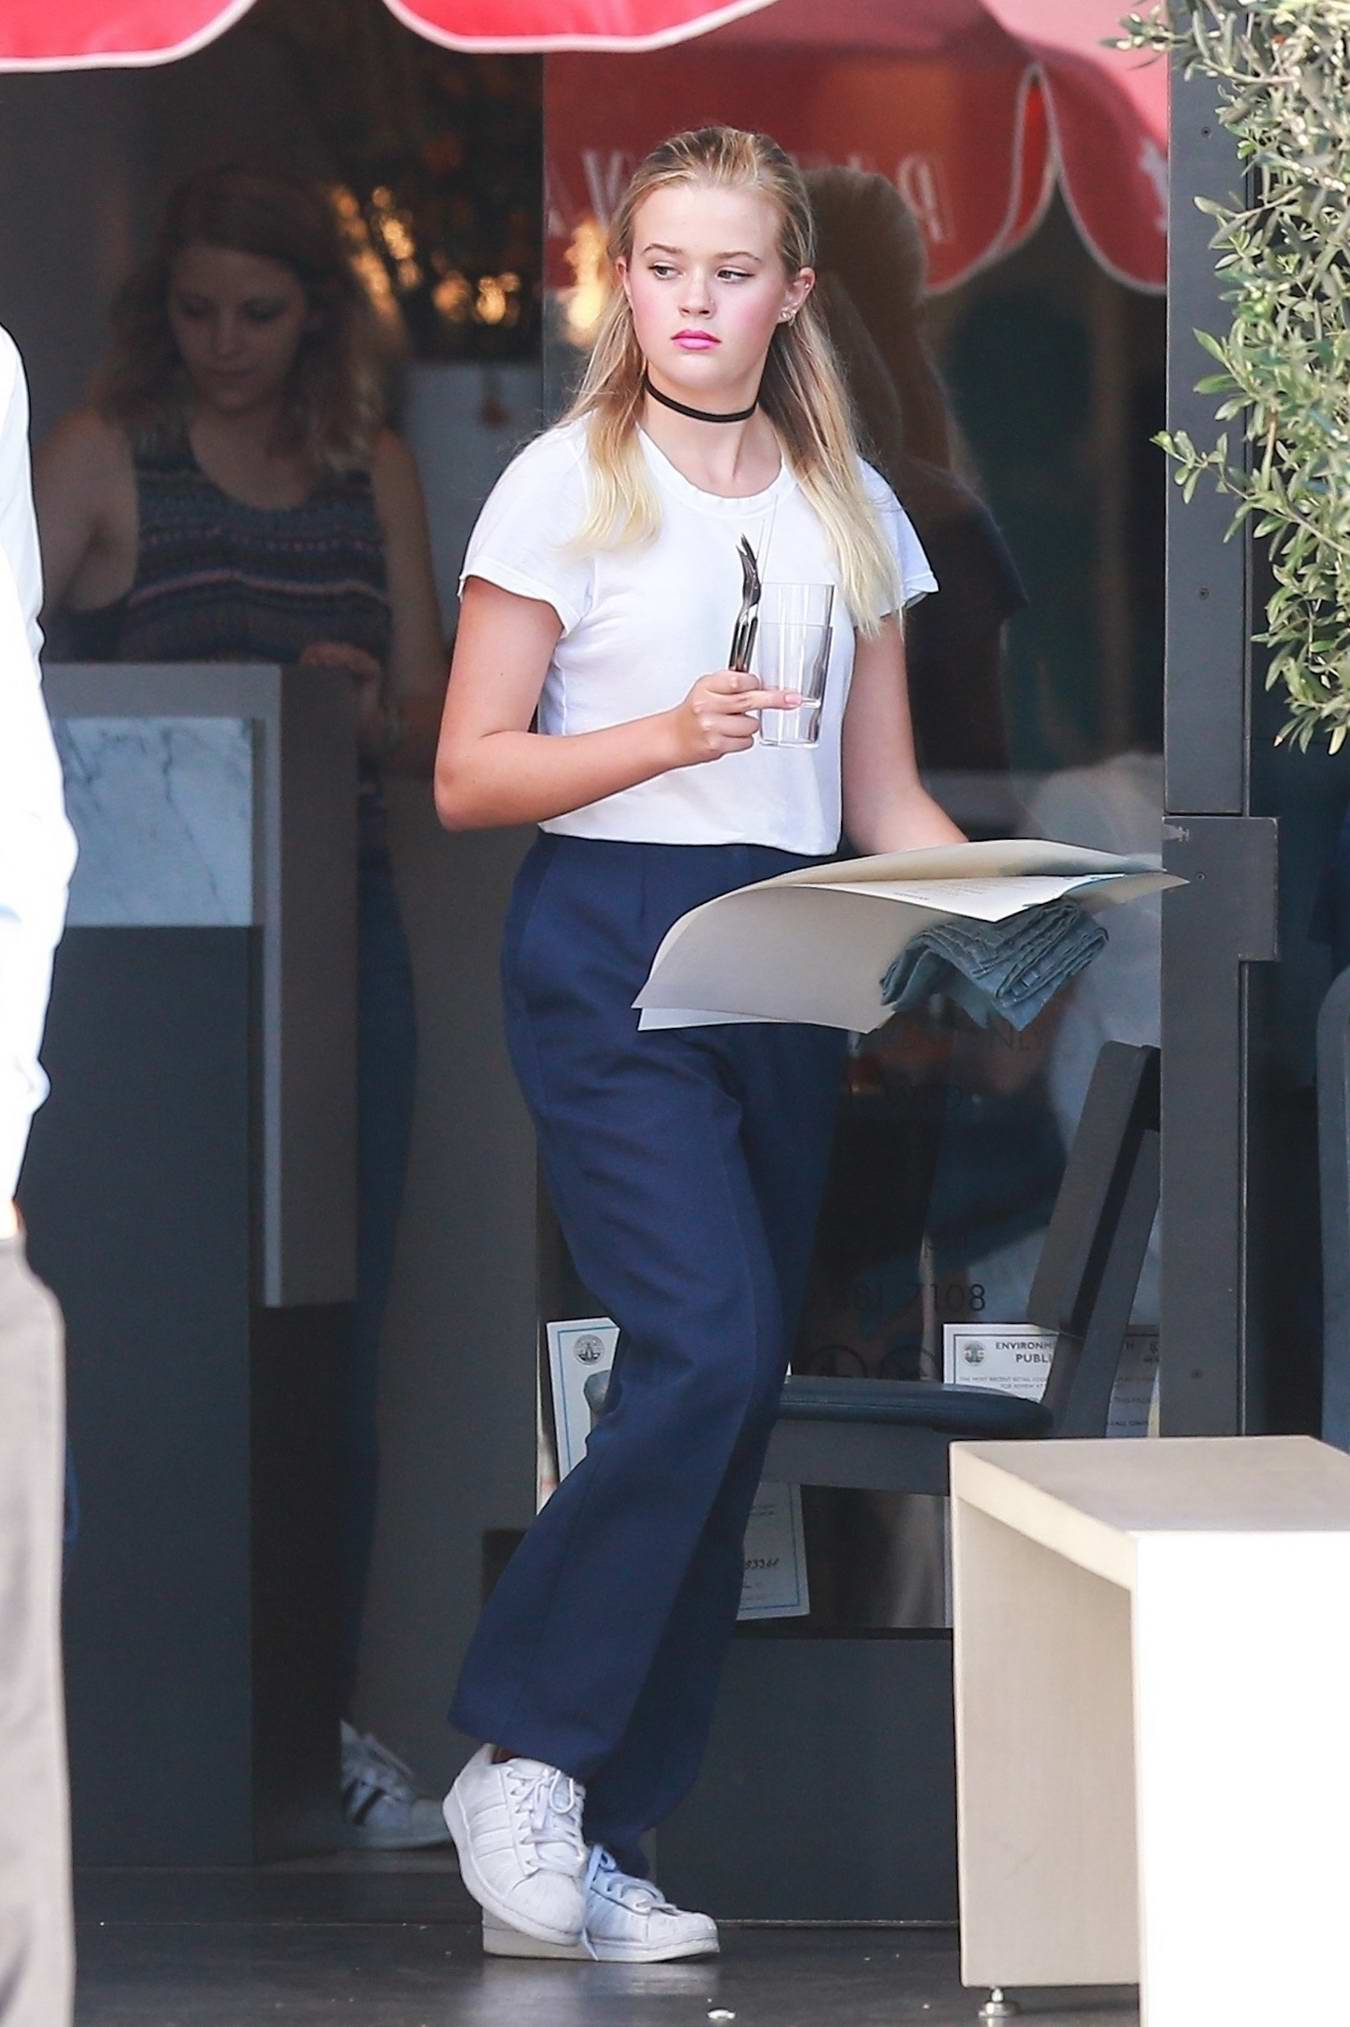 Ava Phillippe Is Spotted Working As A Hostess At Pizzana